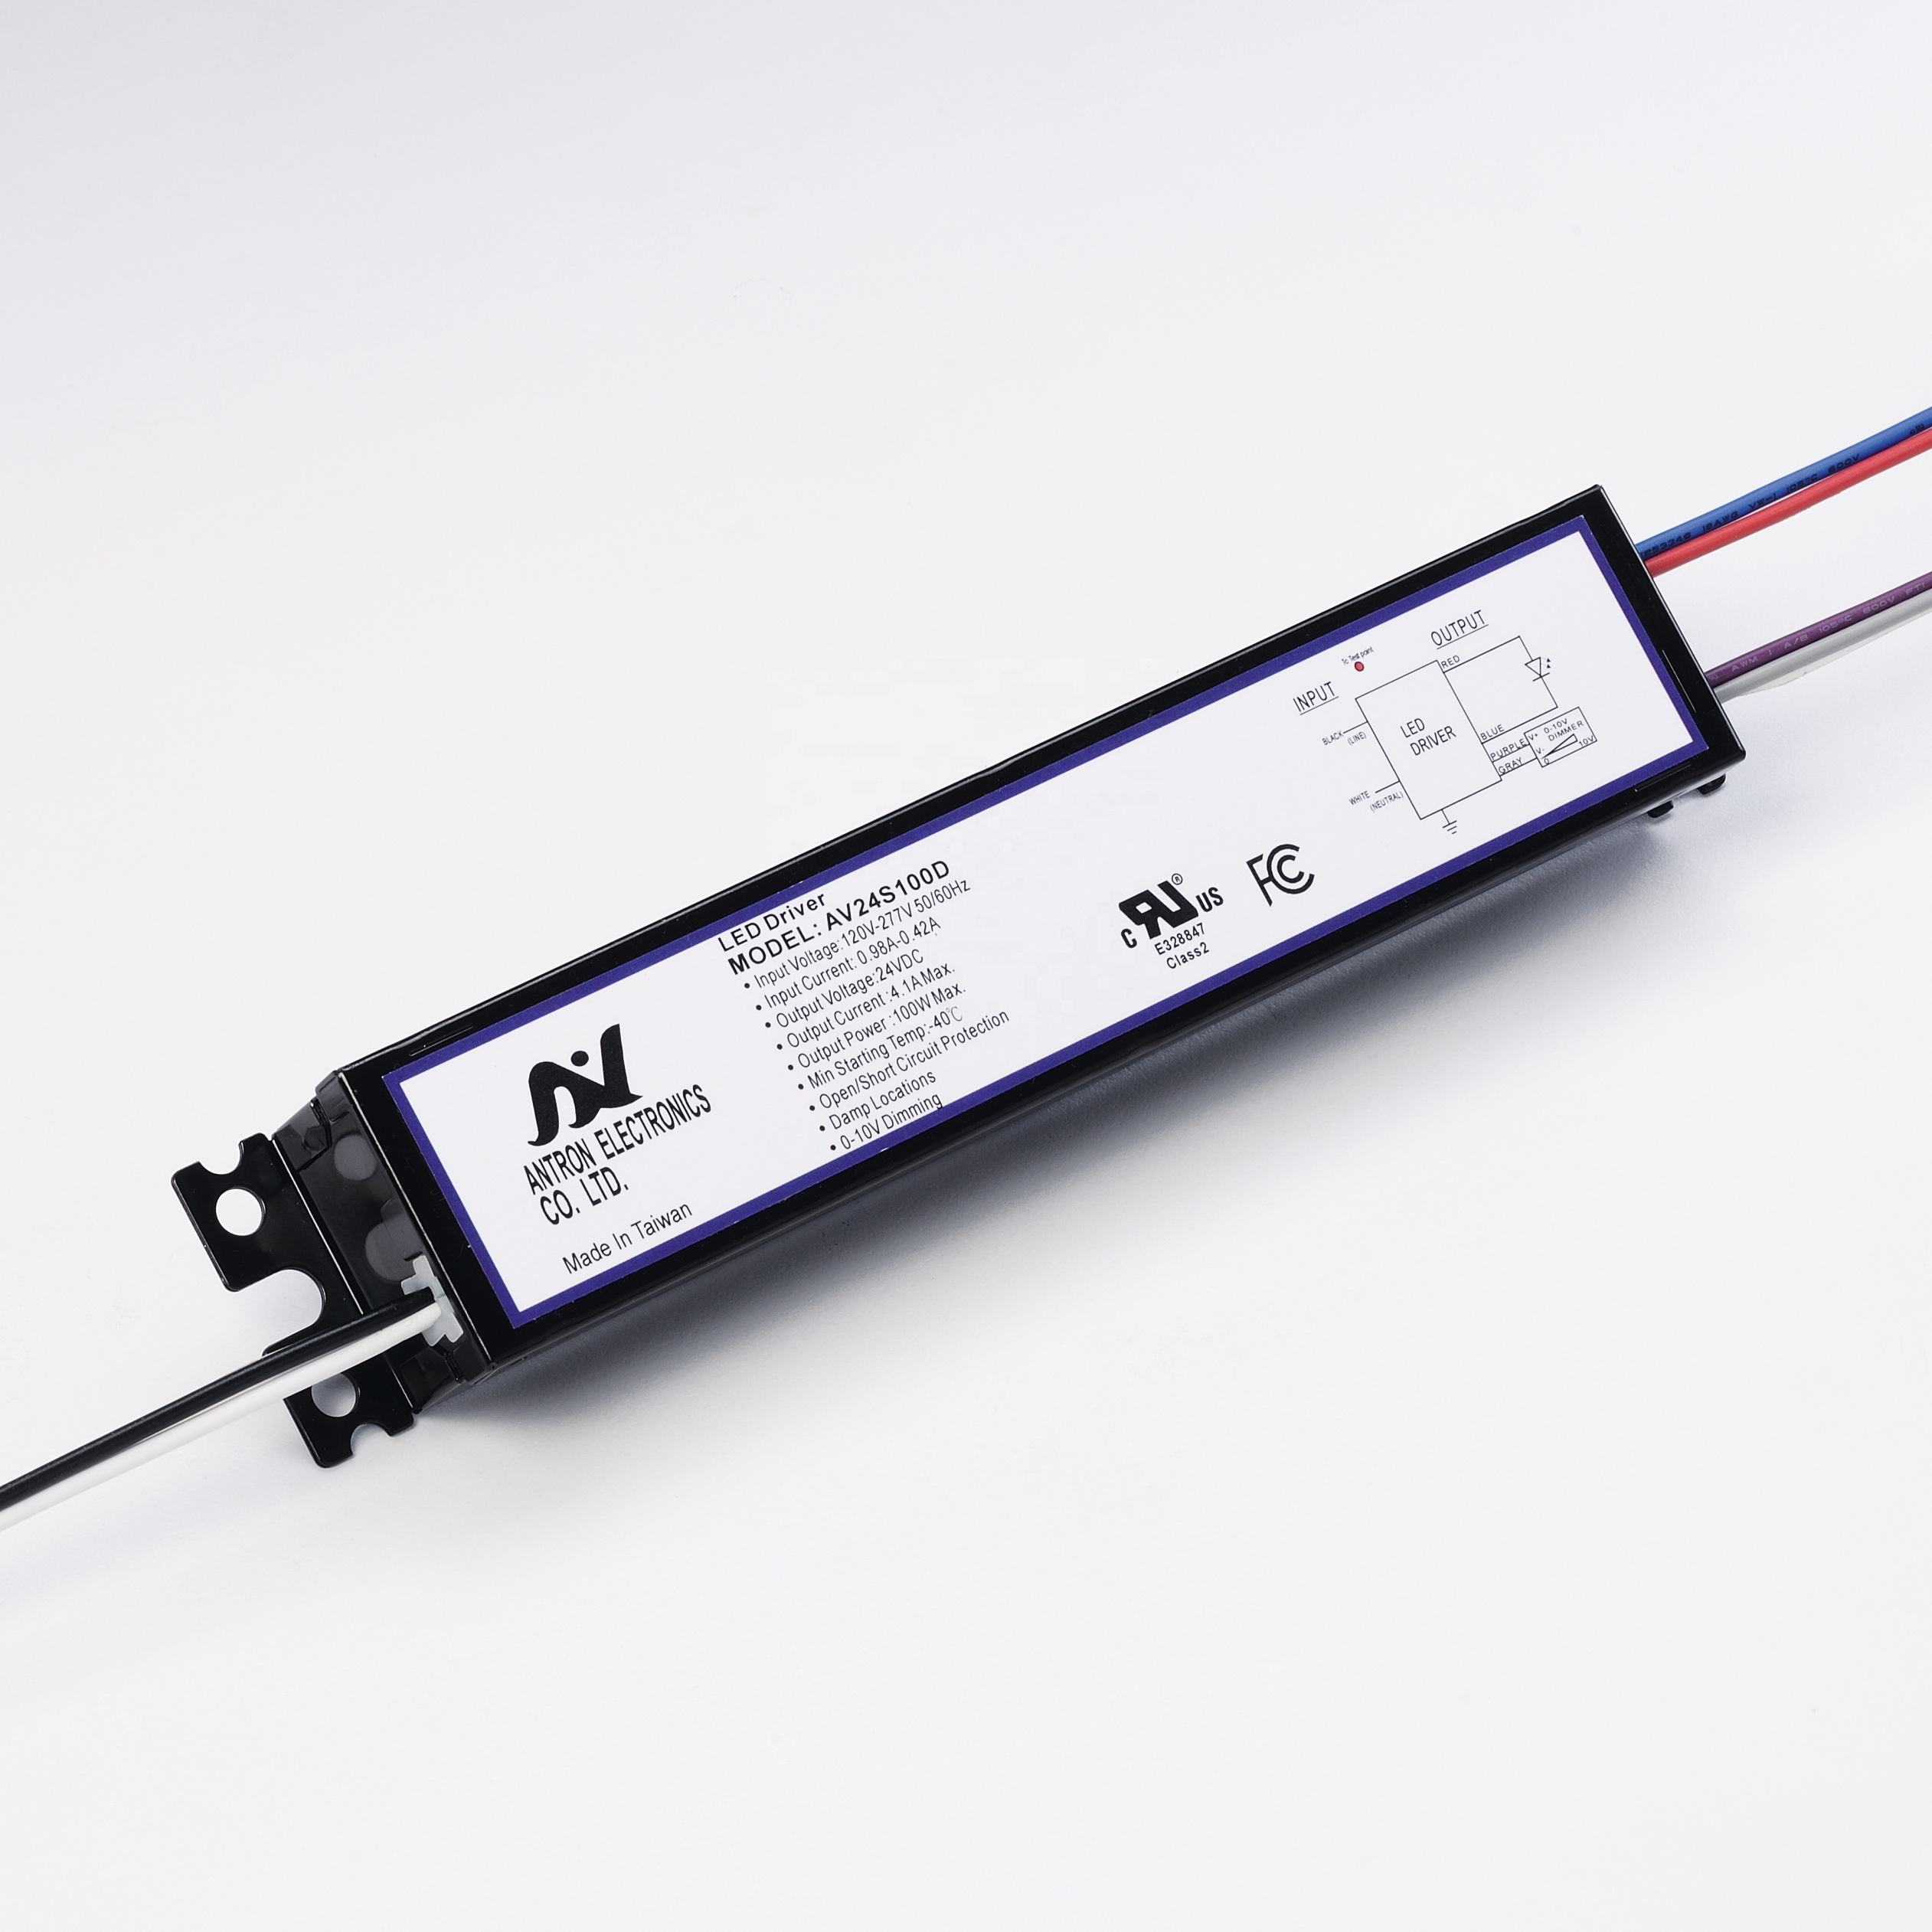 Made in Taiwan 12V 100W LED Driver